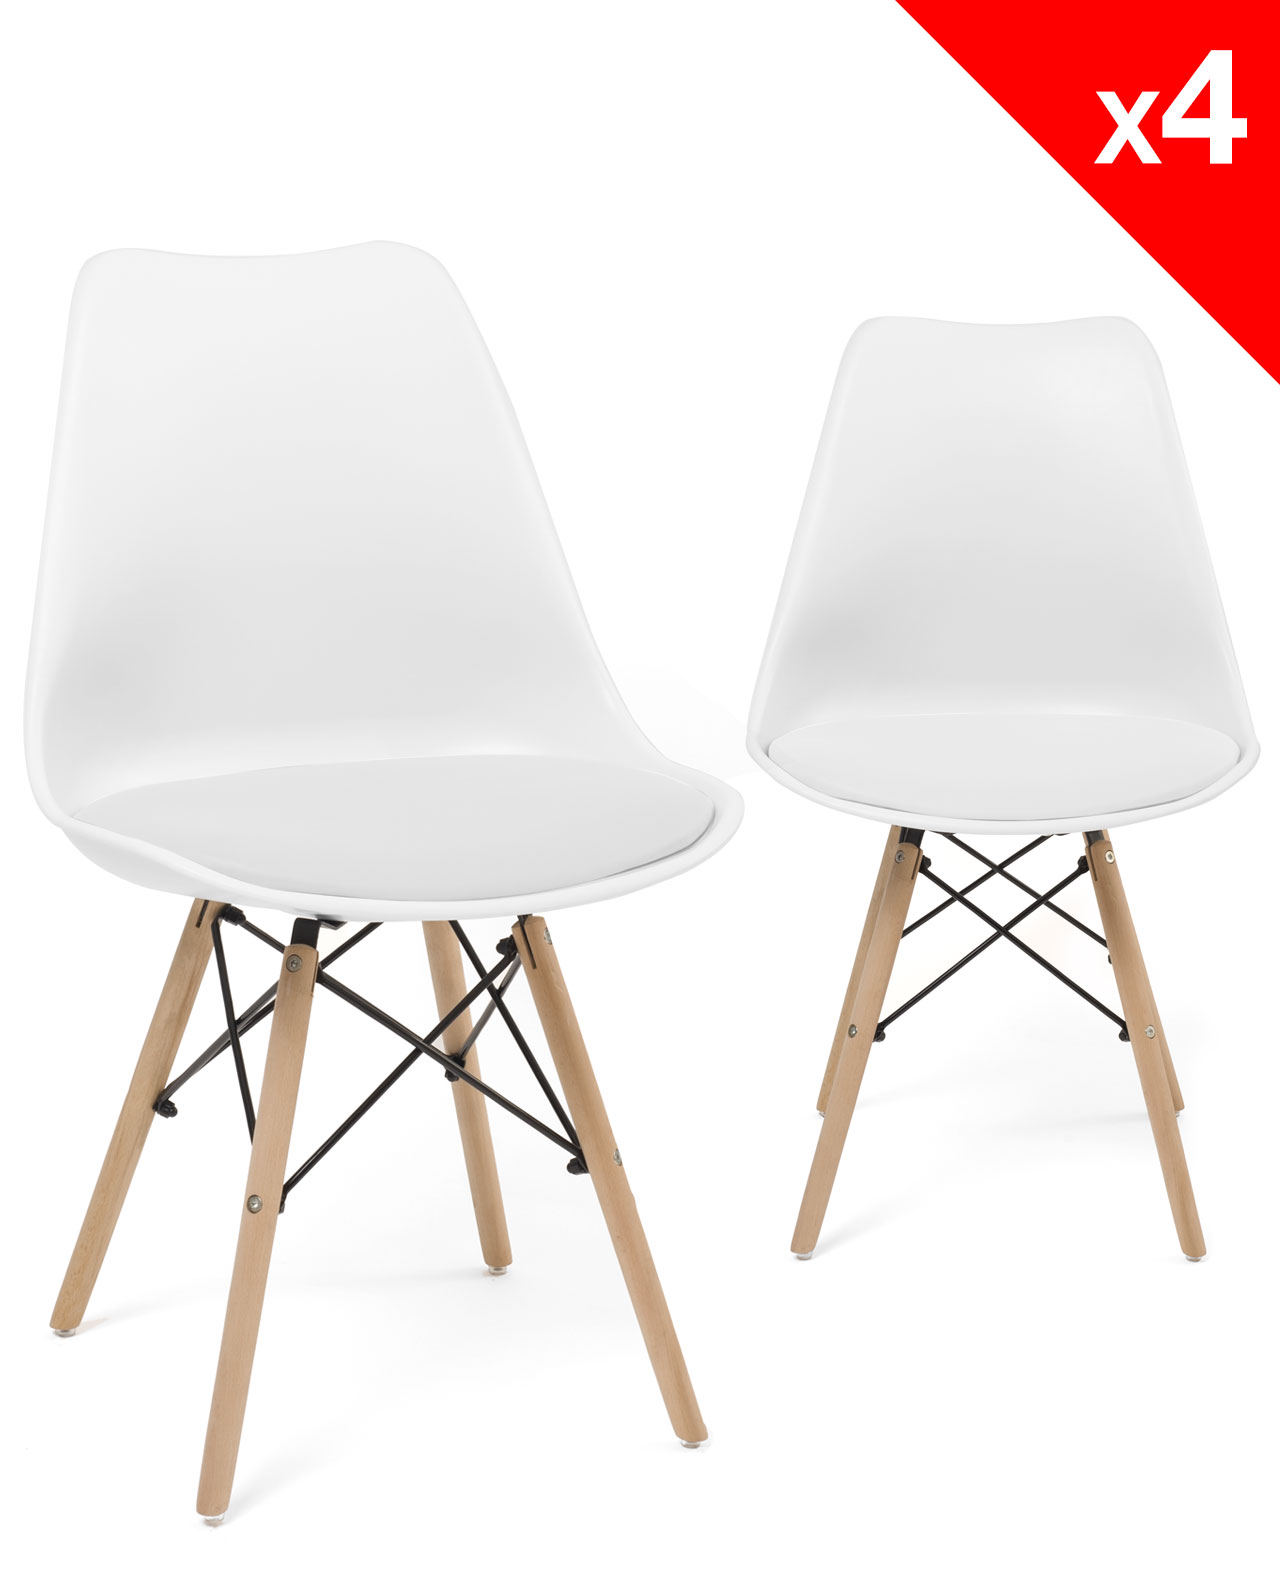 Chaise dsw eames pas cher 28 images chaise dsw pas for Chaise design dsw blanche